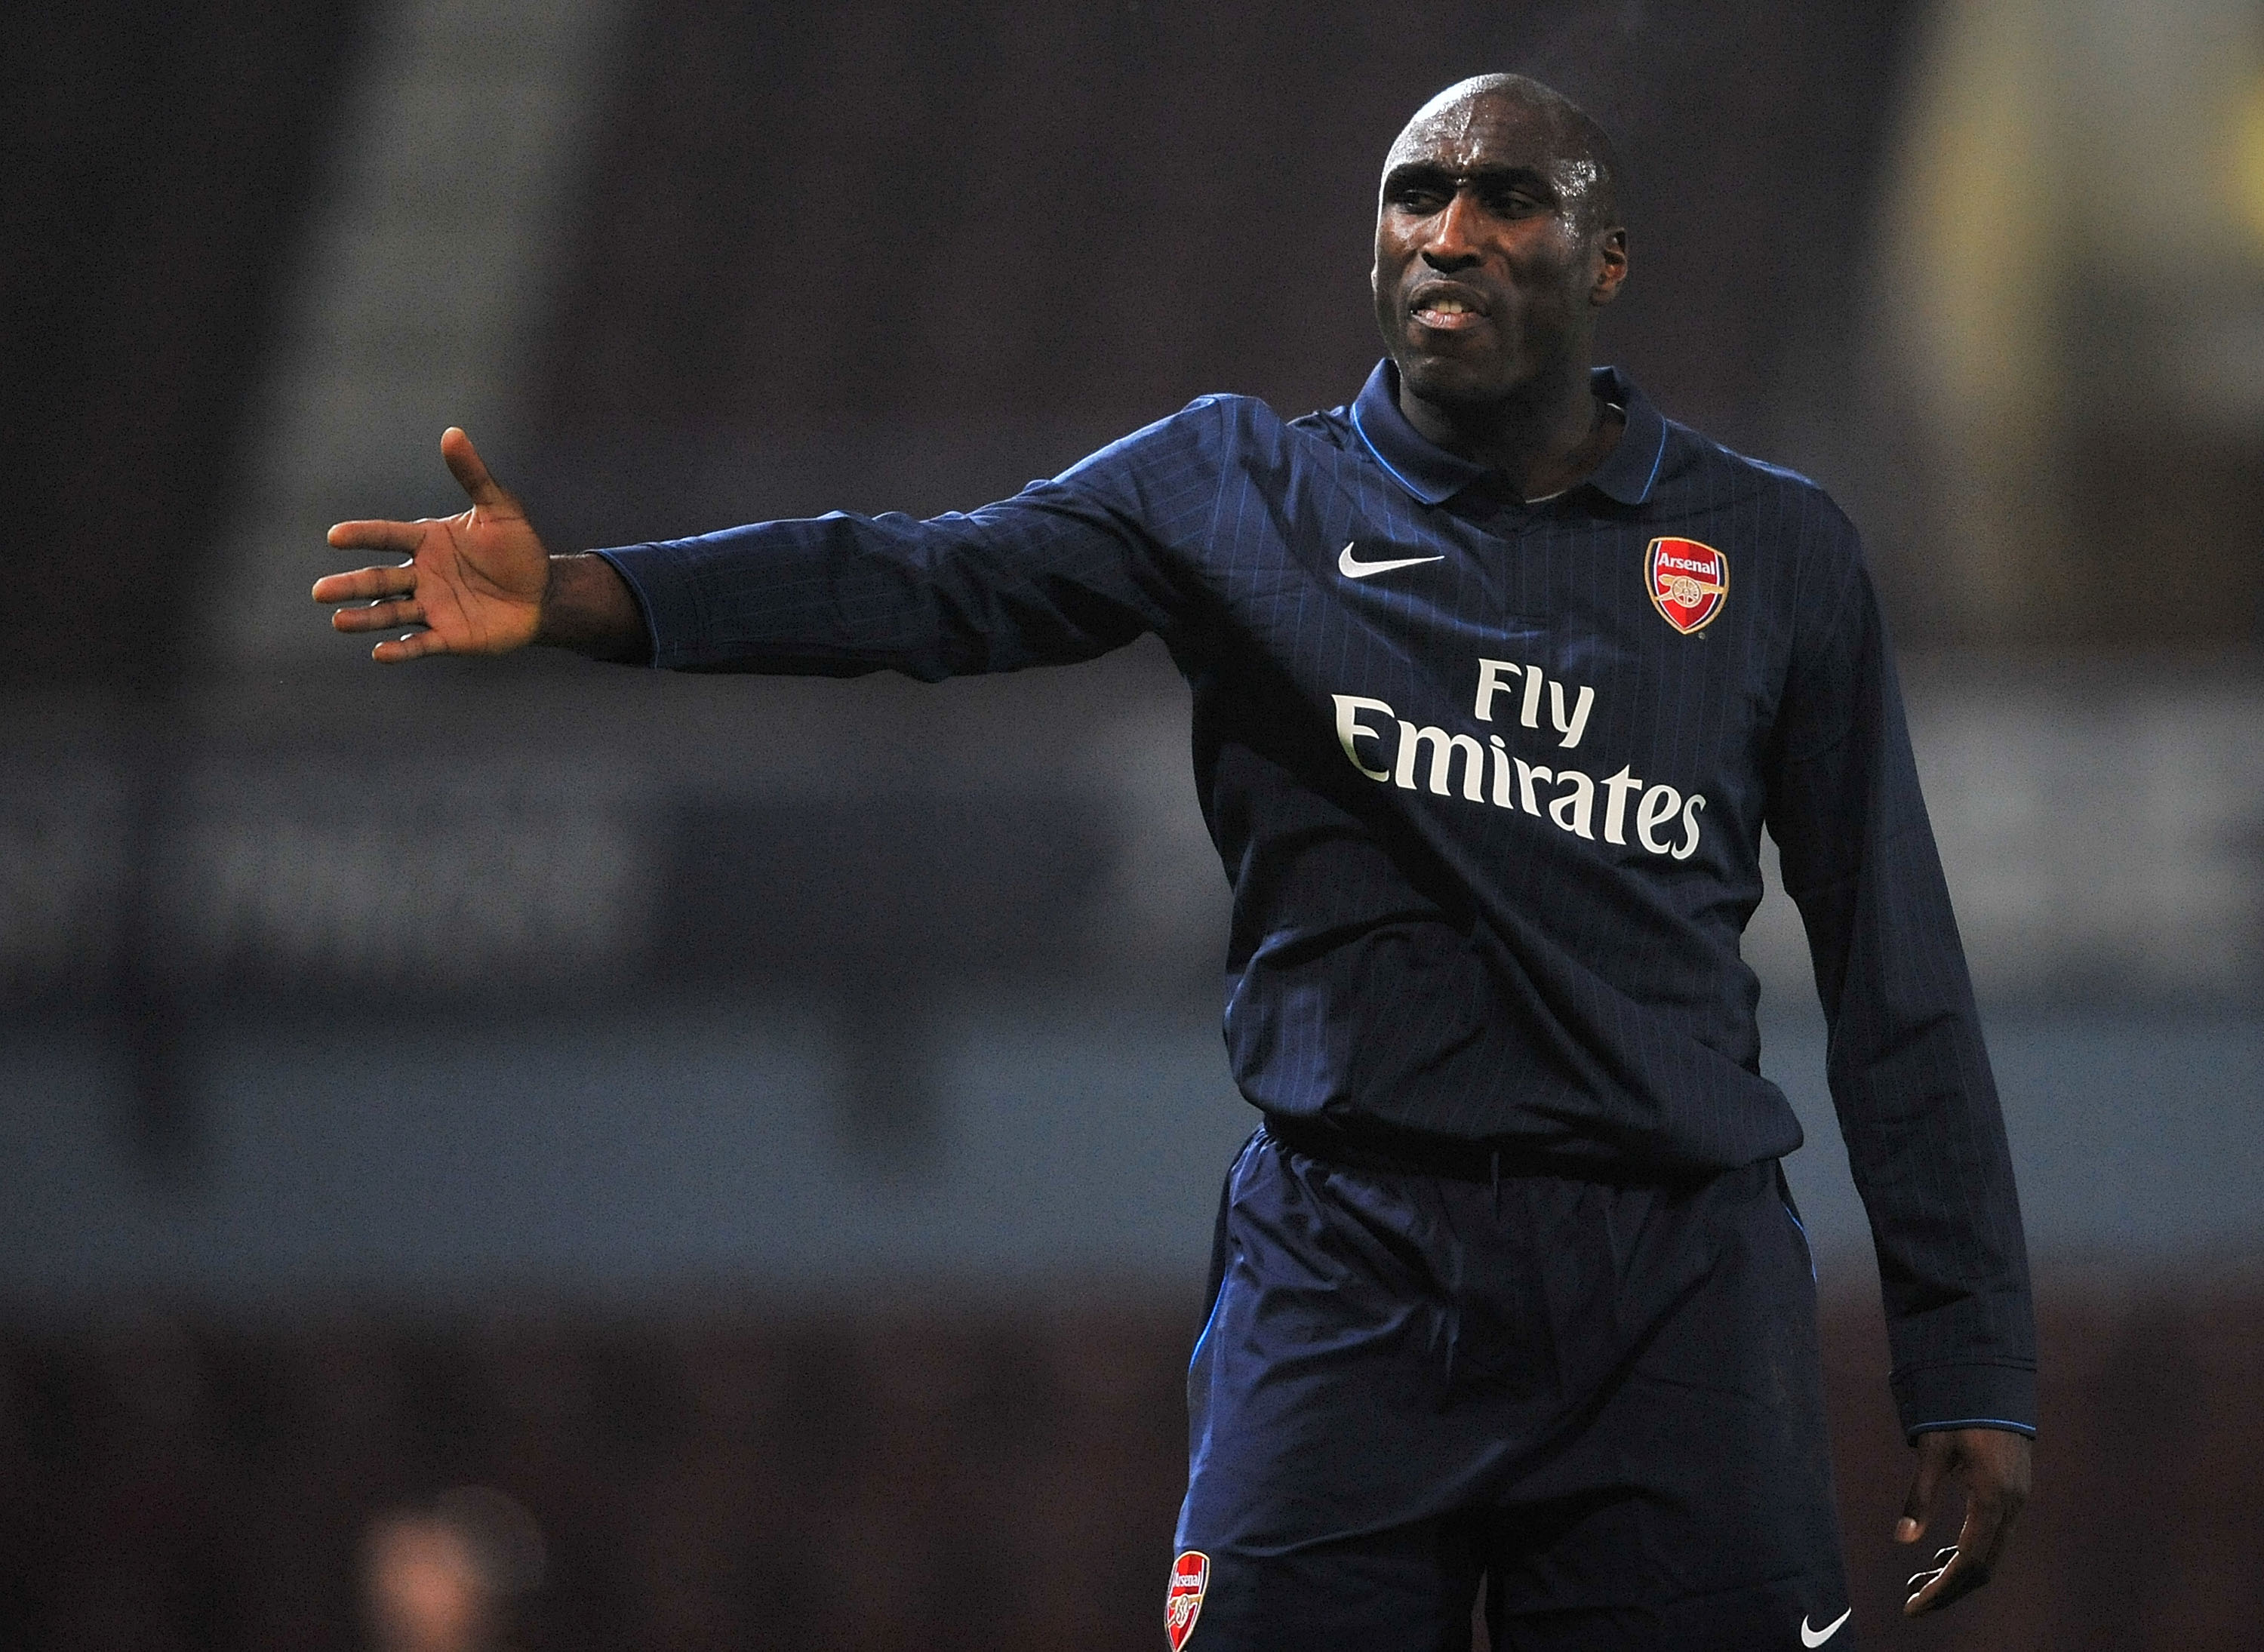 LONDON, ENGLAND - JANUARY 12:  Sol Campbell of Arsenal signals to his team mates during the reserves match between West Ham United Reserves and Arsenal Reserves at Boleyn Ground on January 12, 2010 in London, England.  (Photo by Christopher Lee/Getty Imag